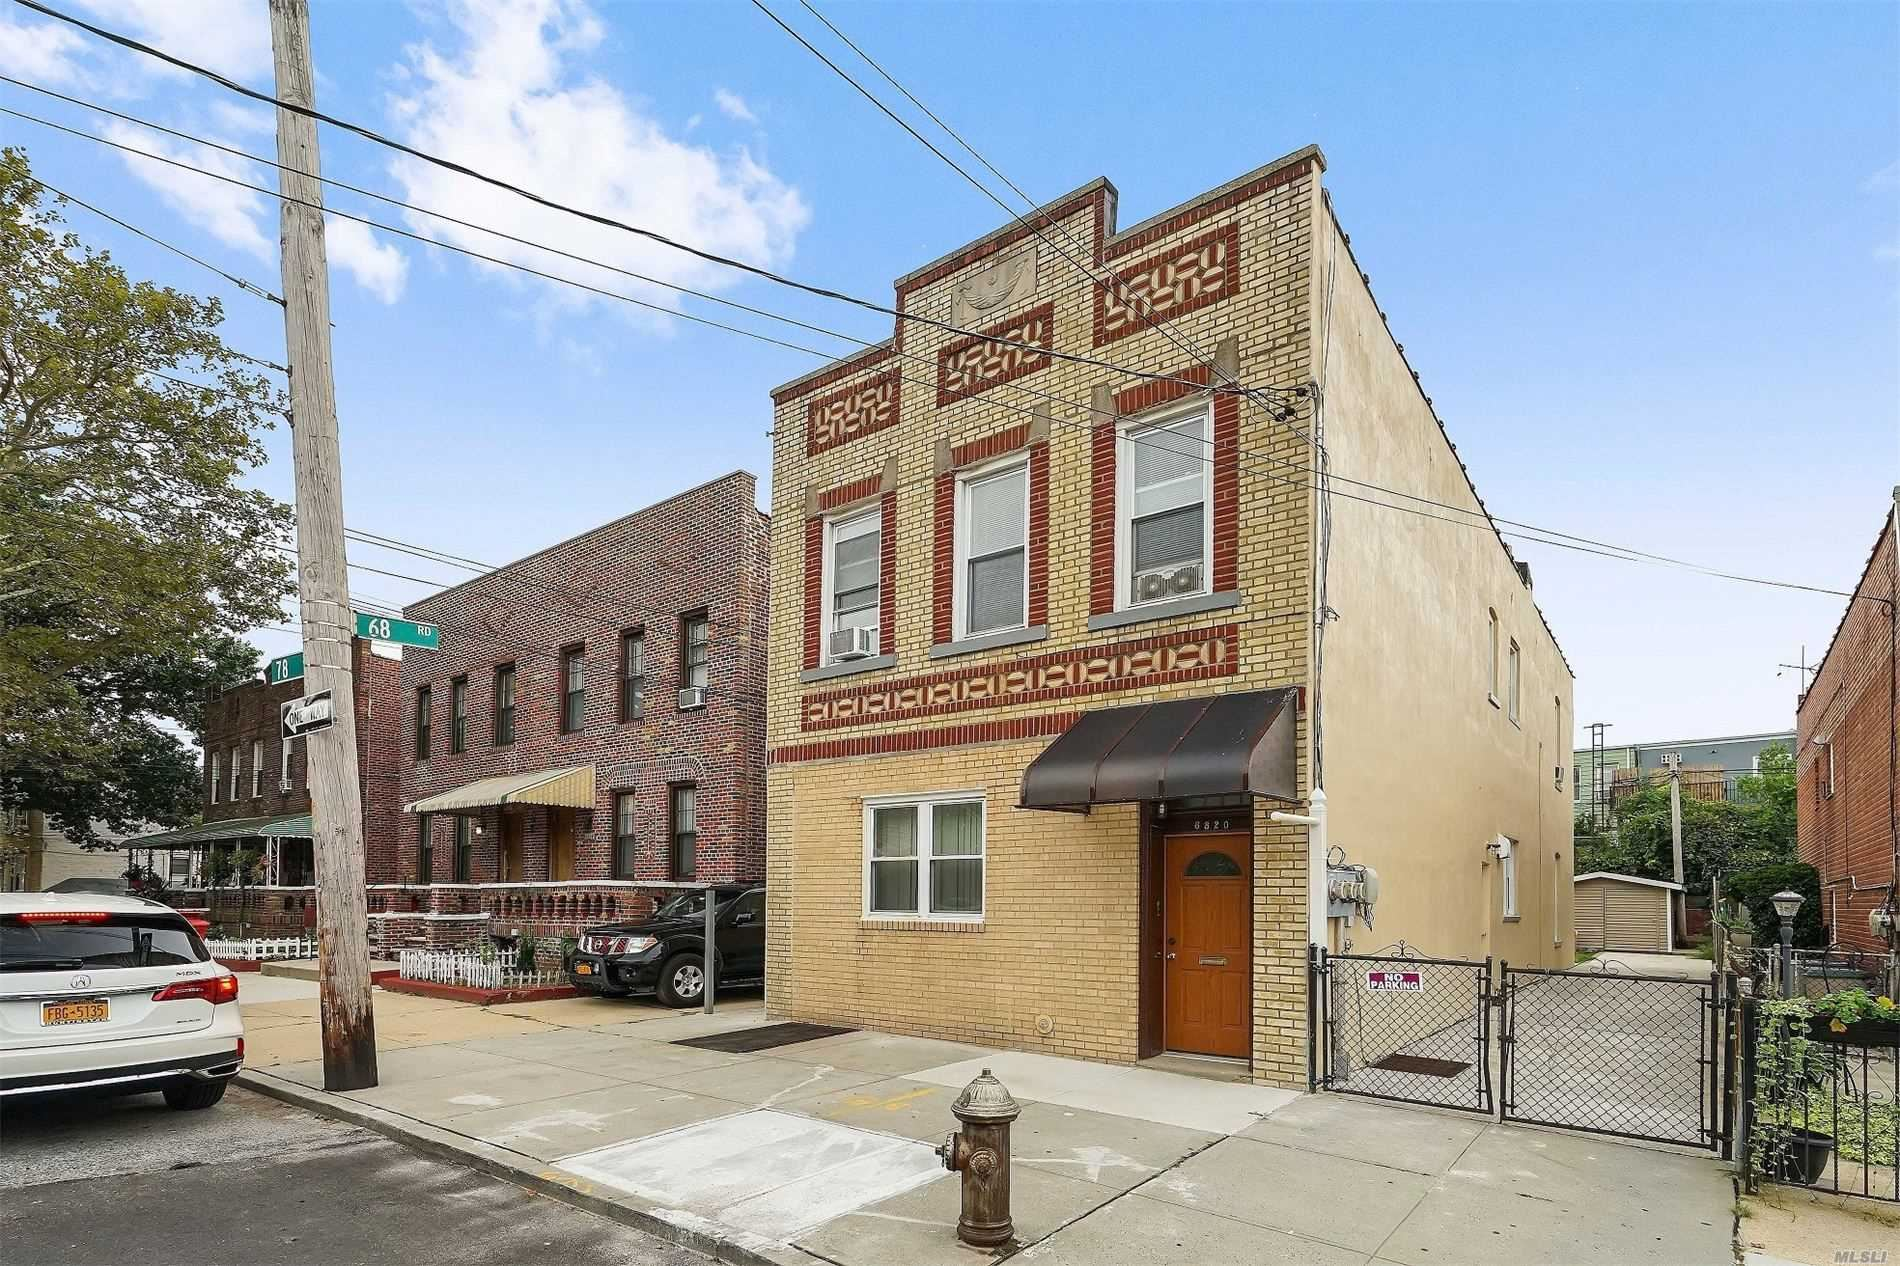 68-20 78th St, Middle Village, NY 11379 - MLS#: 3227406